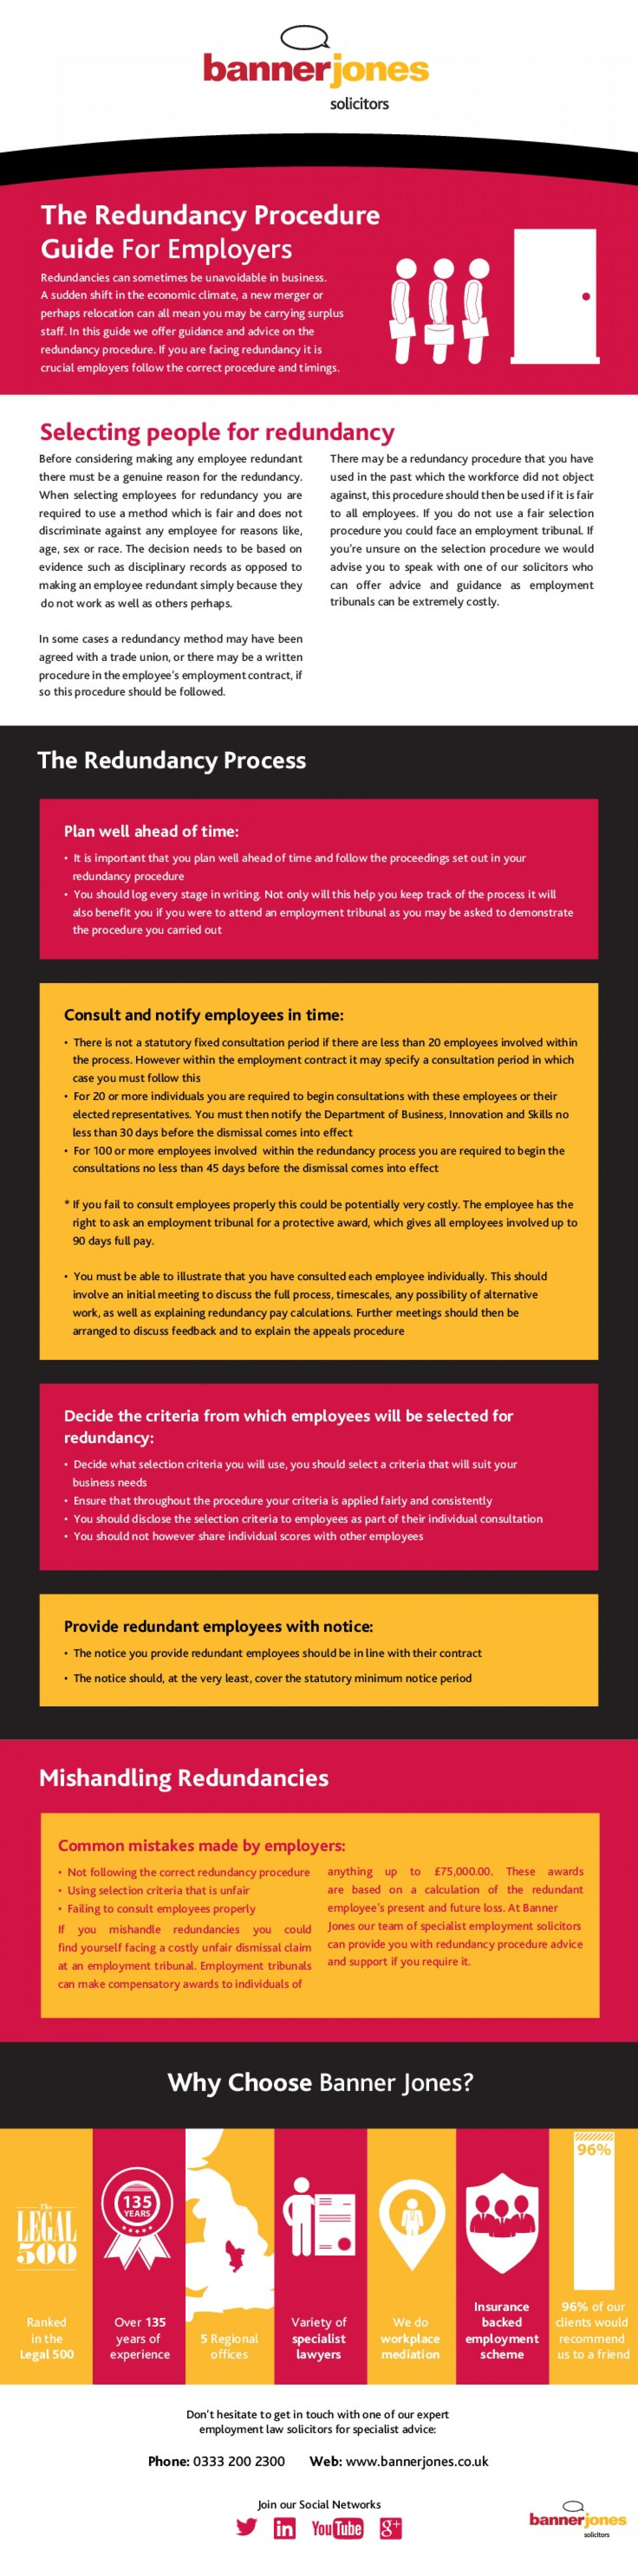 Employment Law - Redundancy Guide to Employers Infographic